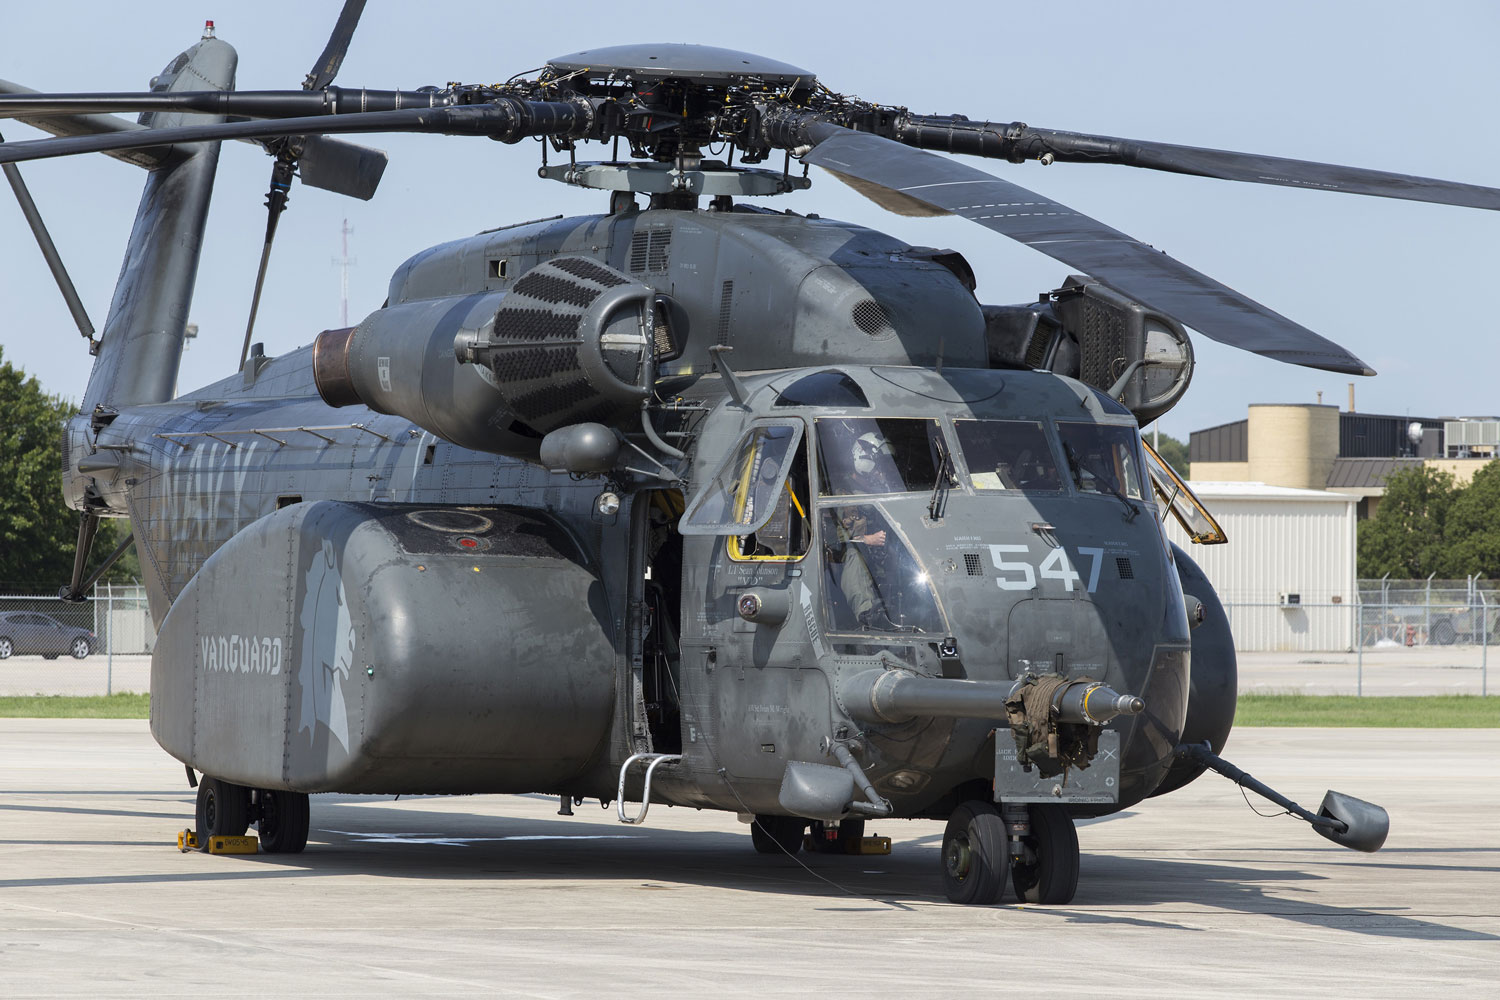 United States Navy MH-53E Sea Dragon pilots with Helicopter Mine Countermeasures Squadron 14 perform pre-flight checks prior Aug. 31, 2017, at Joint Base San Antonio-Lackland, Texas, for Hurricane Harvey relief missions.